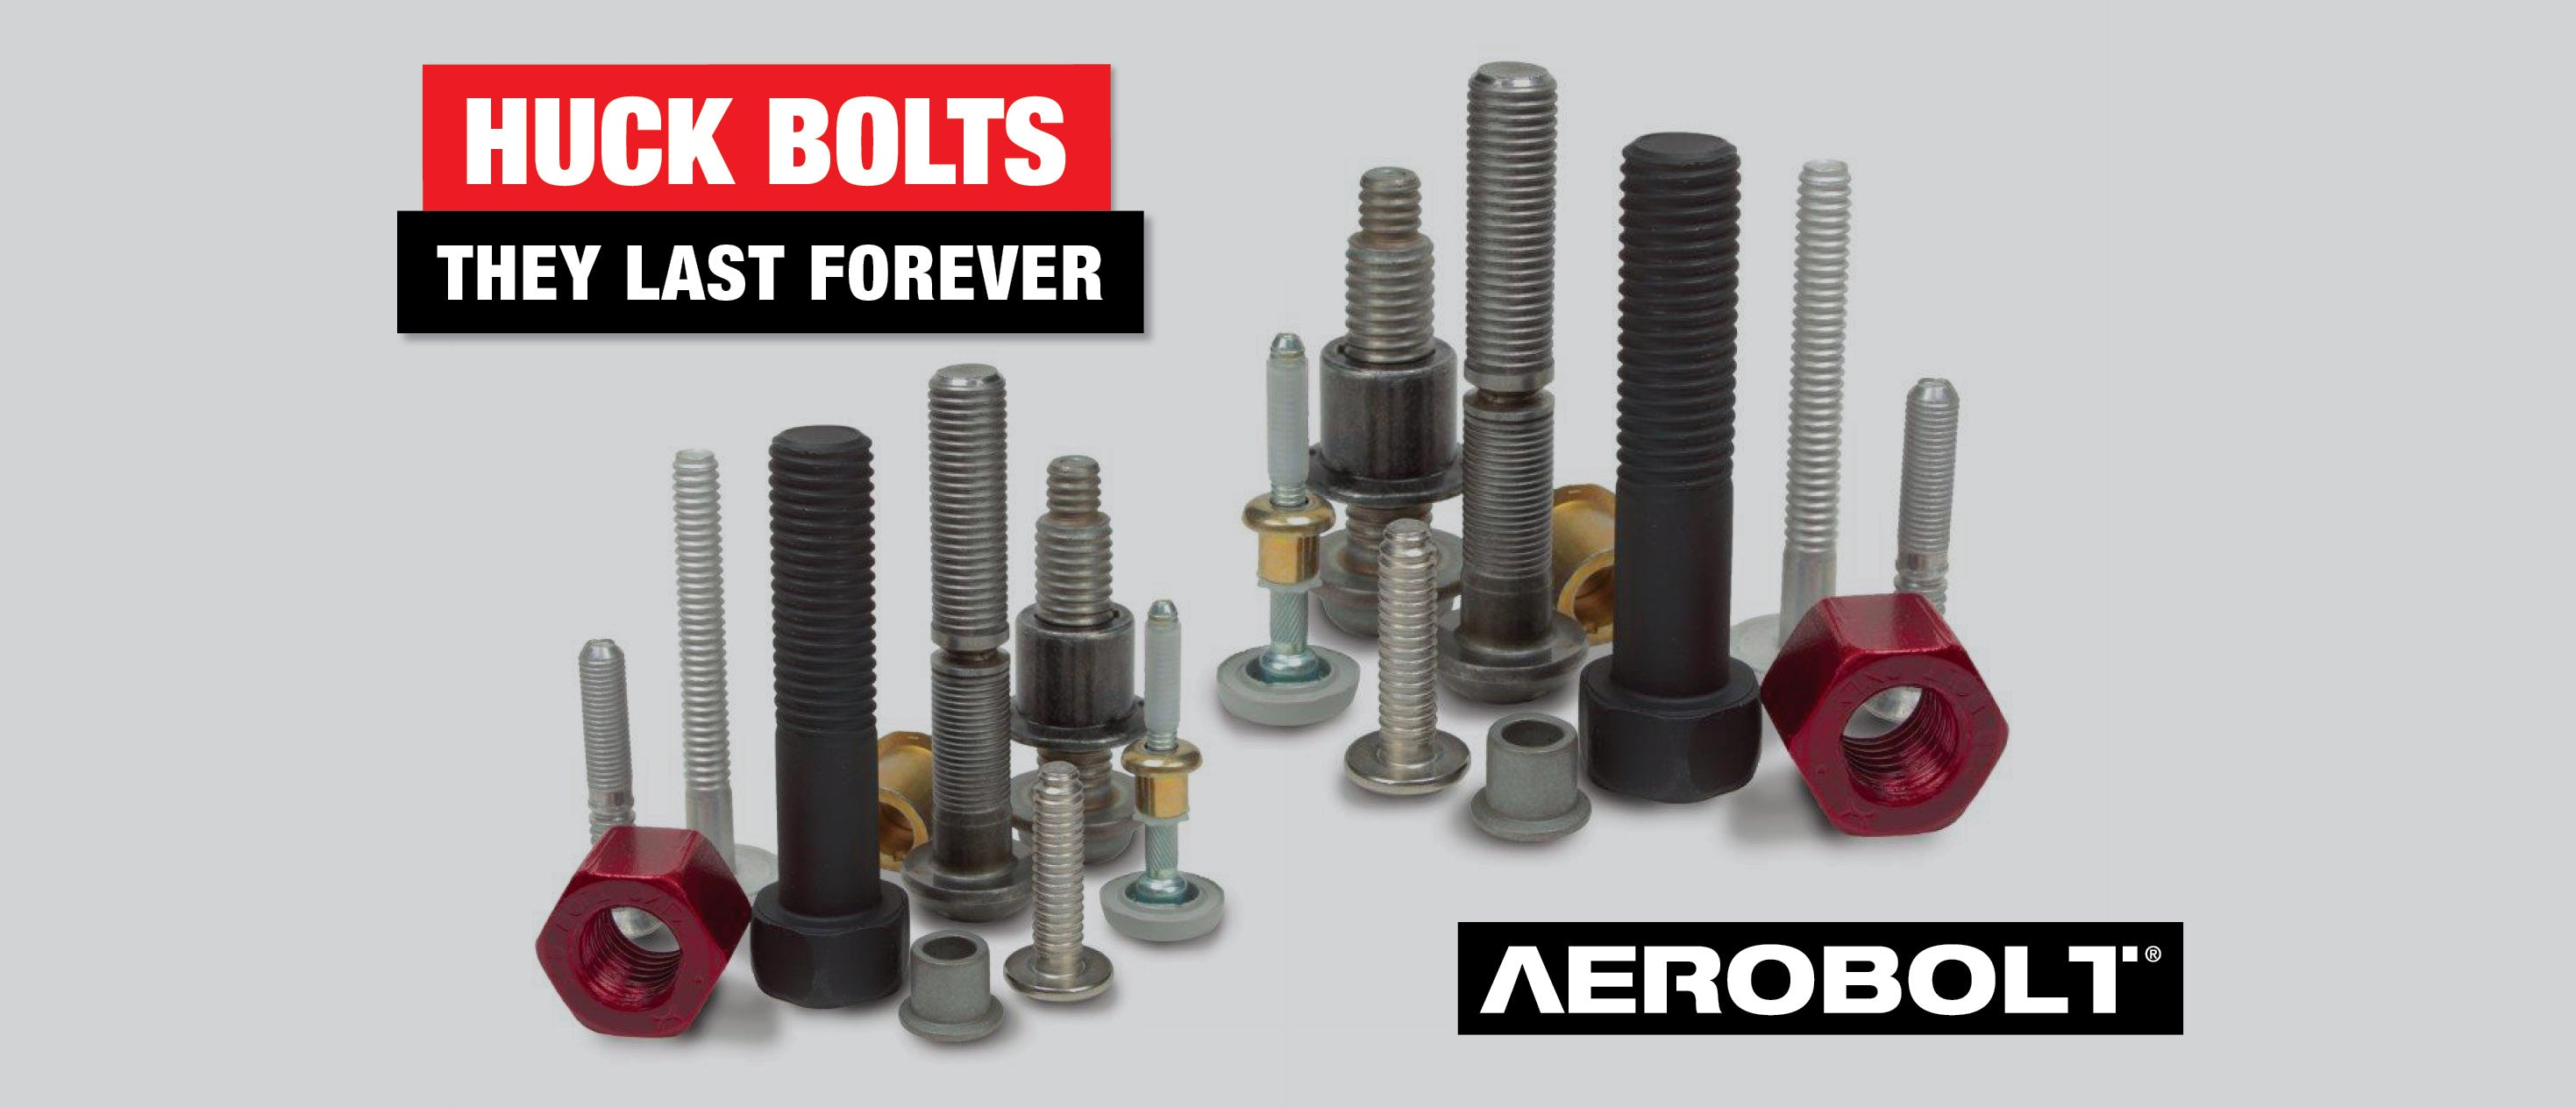 Huck Bolts, they last forever